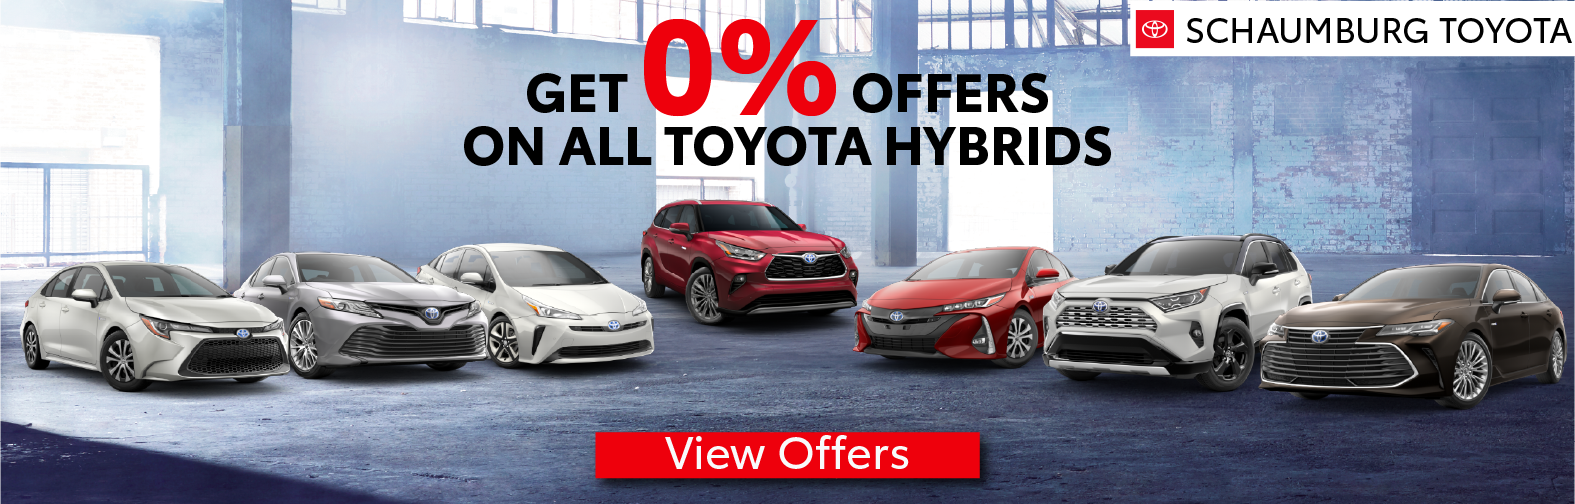 Schaumburg Toyota 0% offers on all 2020 Hybrid Vehicles